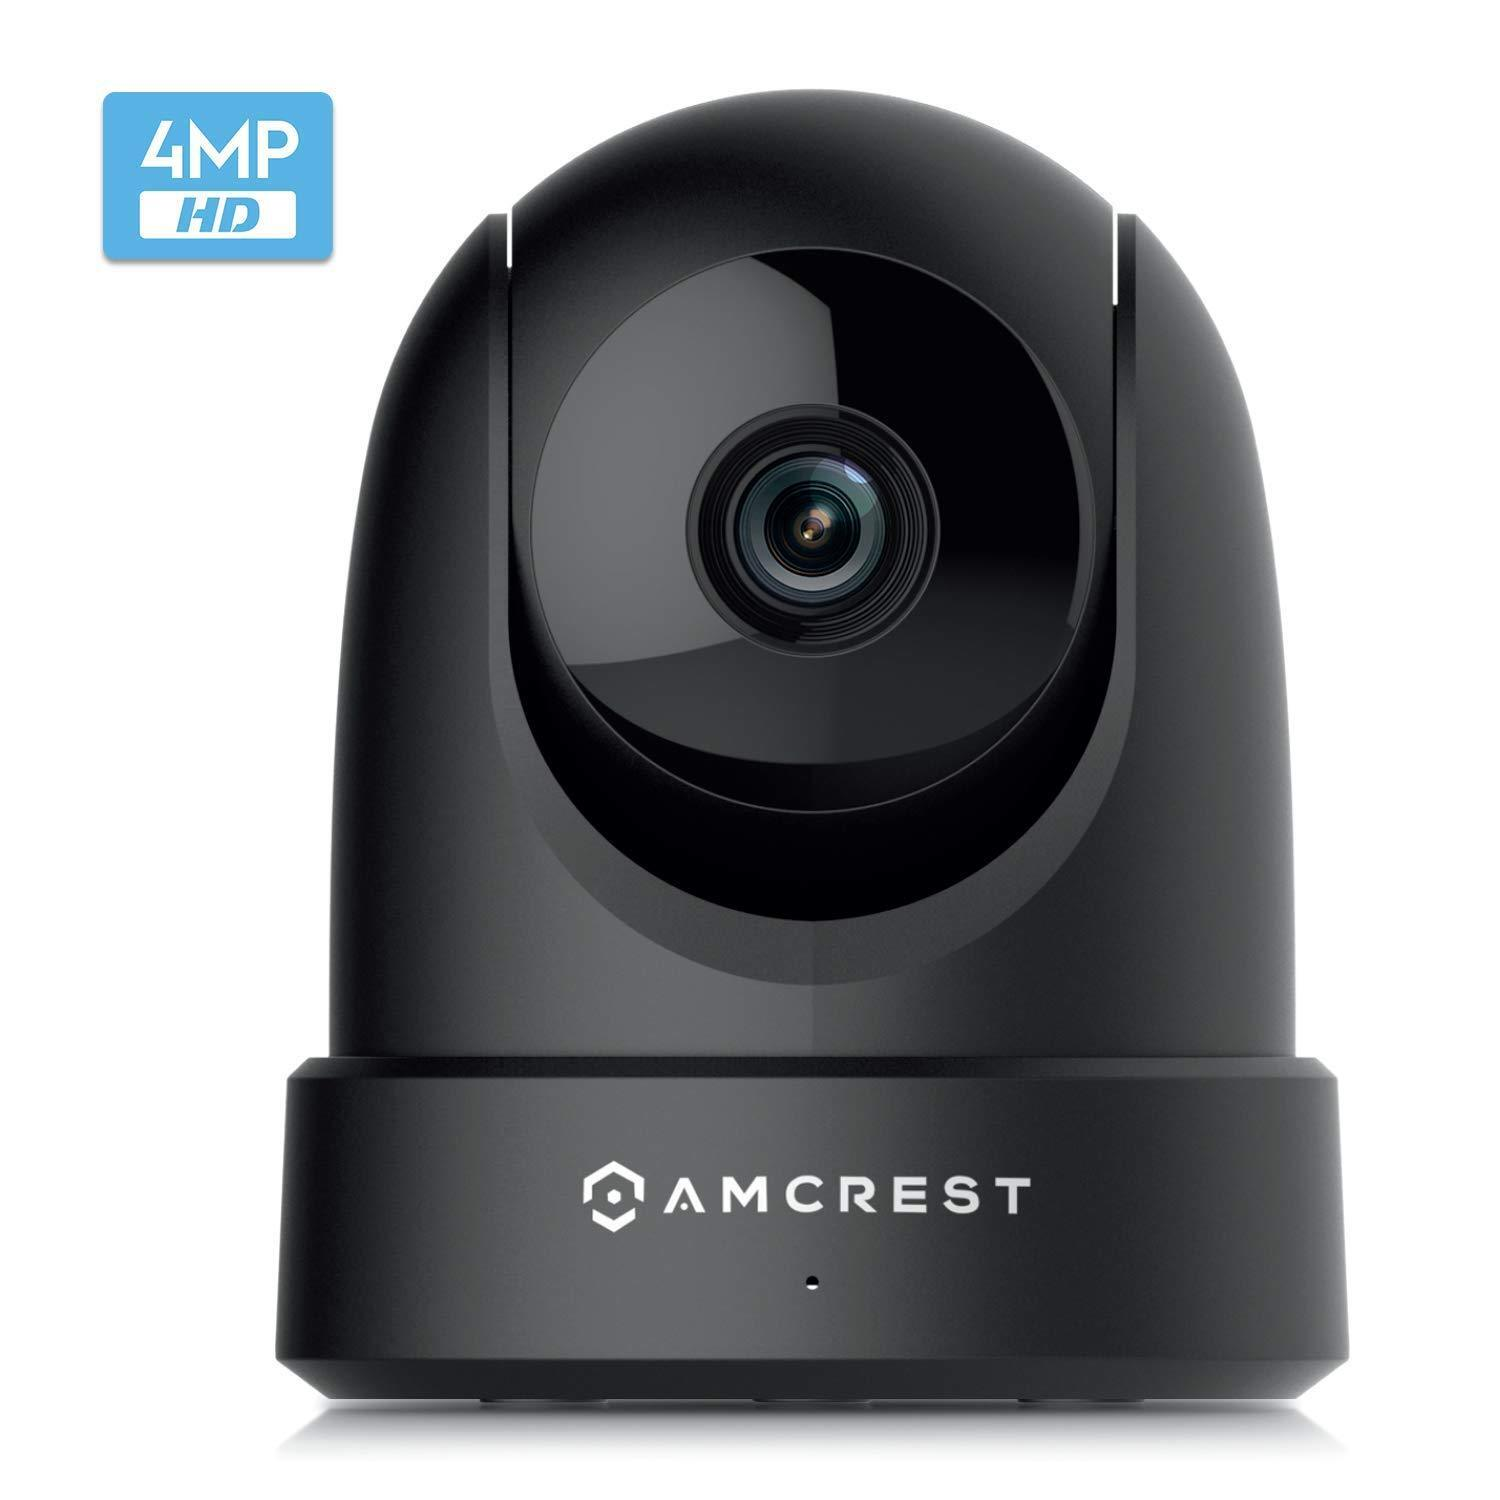 4mp ultrahd indoor wifi security ip camera